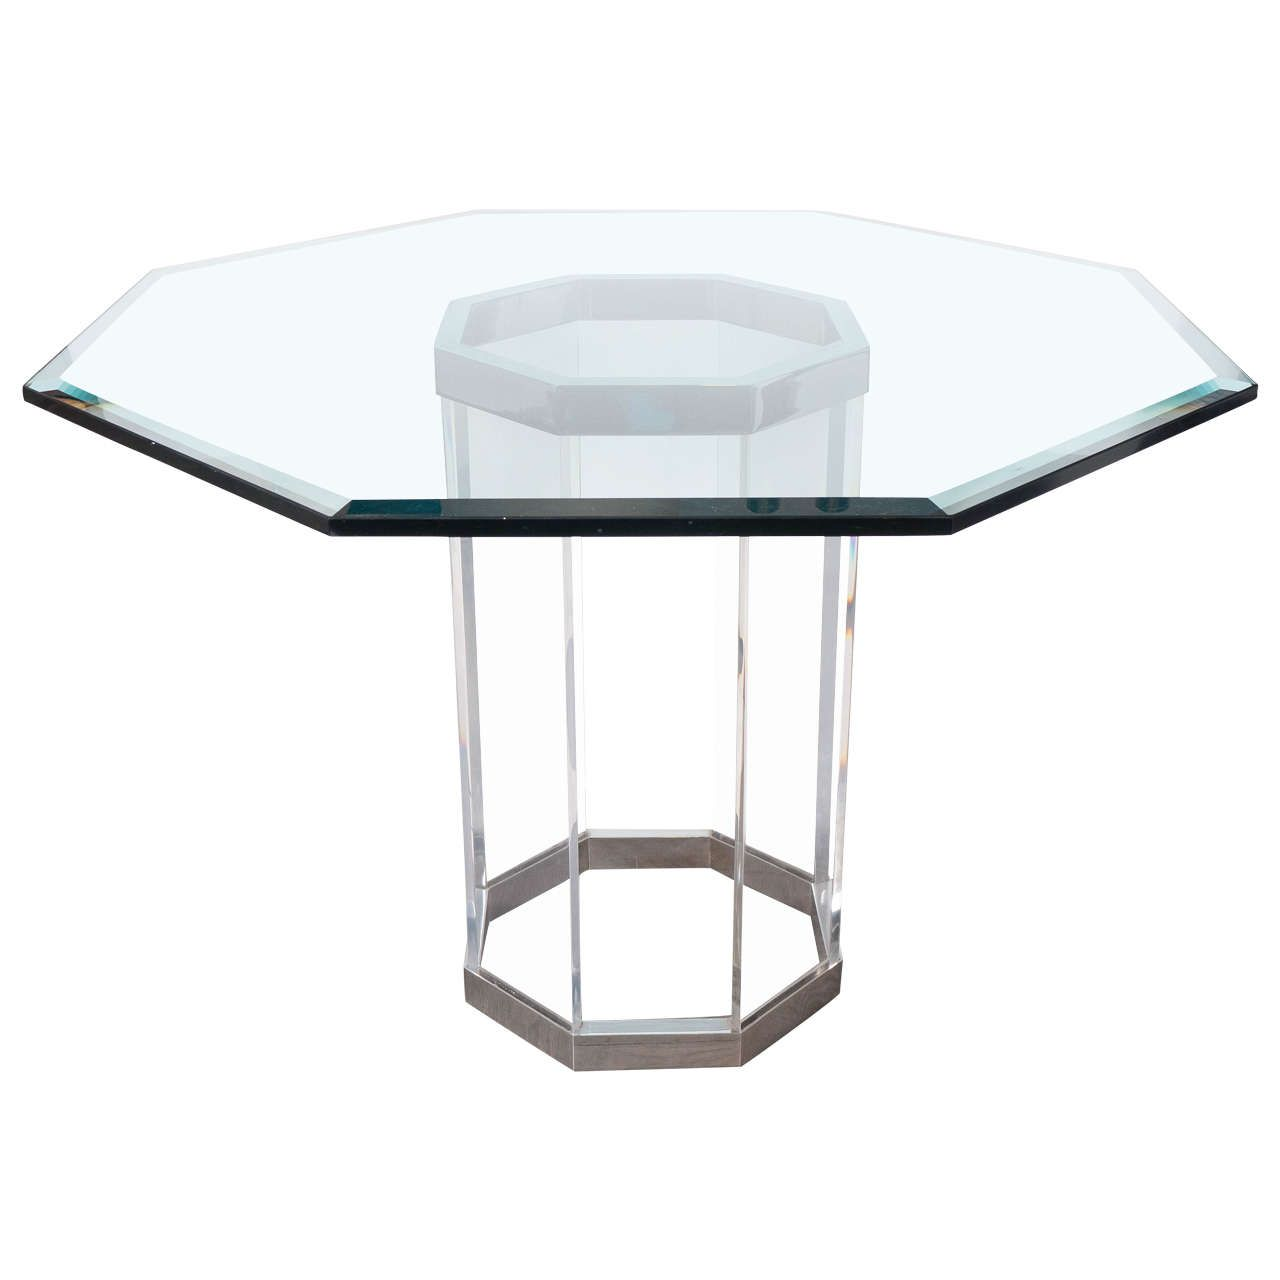 Luxe Mid Century Modernist Octagonal Dining Table In Chrome